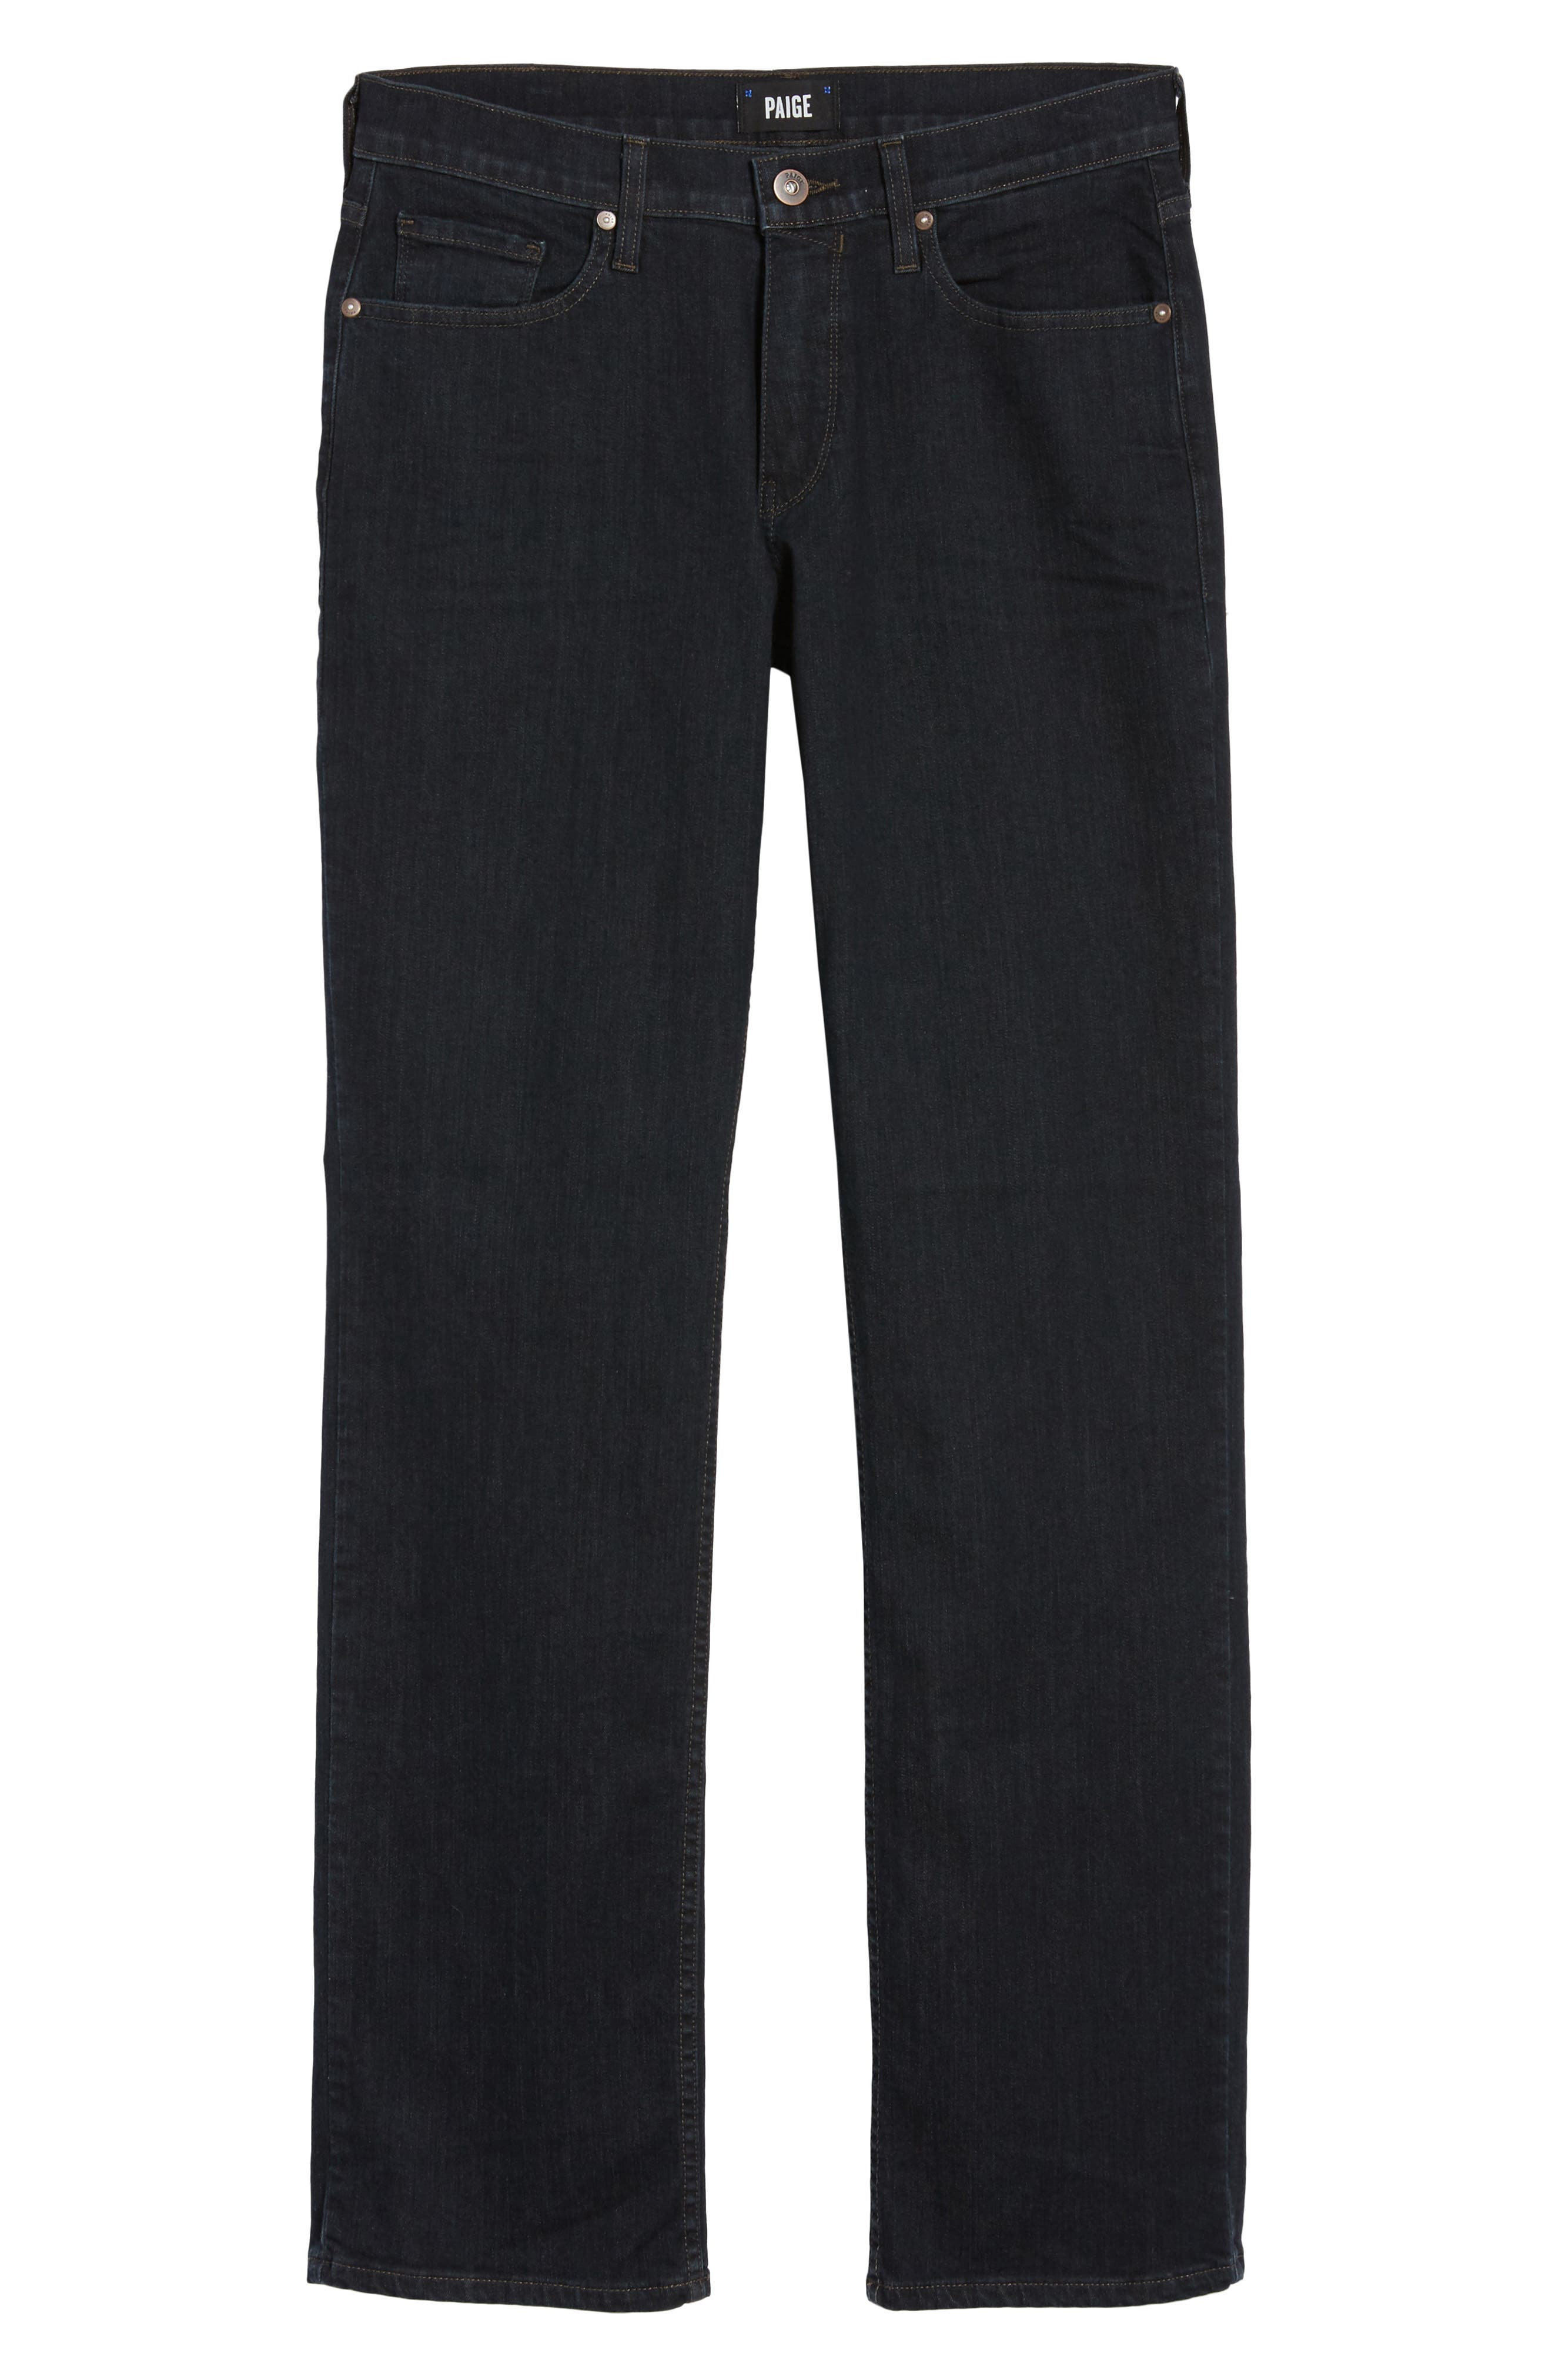 Doheny Relaxed Fit Jeans,                             Alternate thumbnail 6, color,                             TOMMY